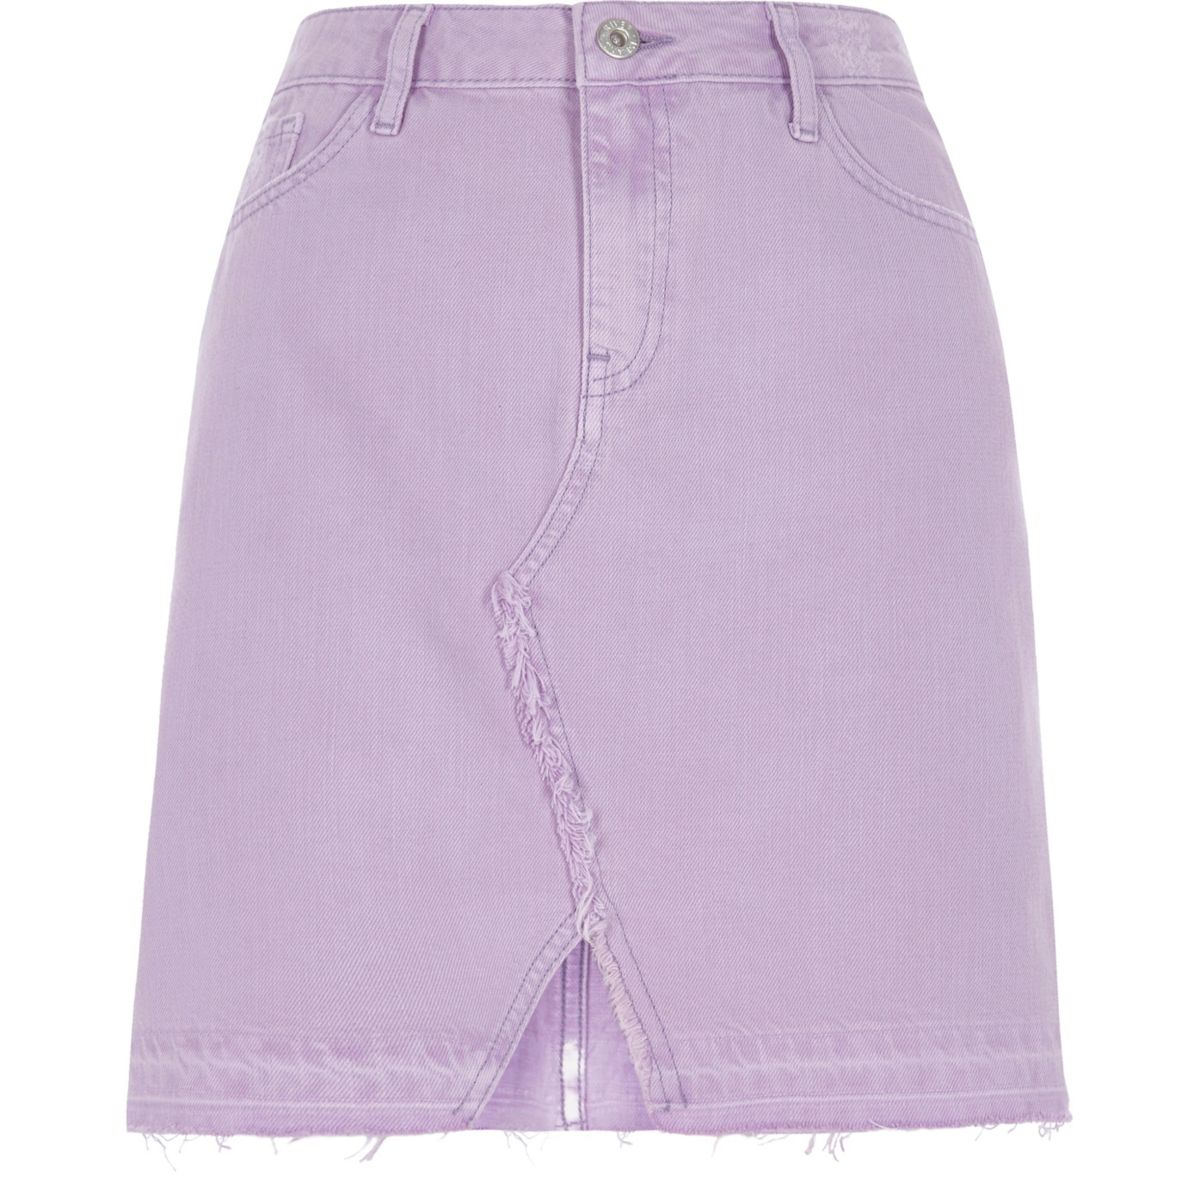 Light purple released hem denim mini skirt